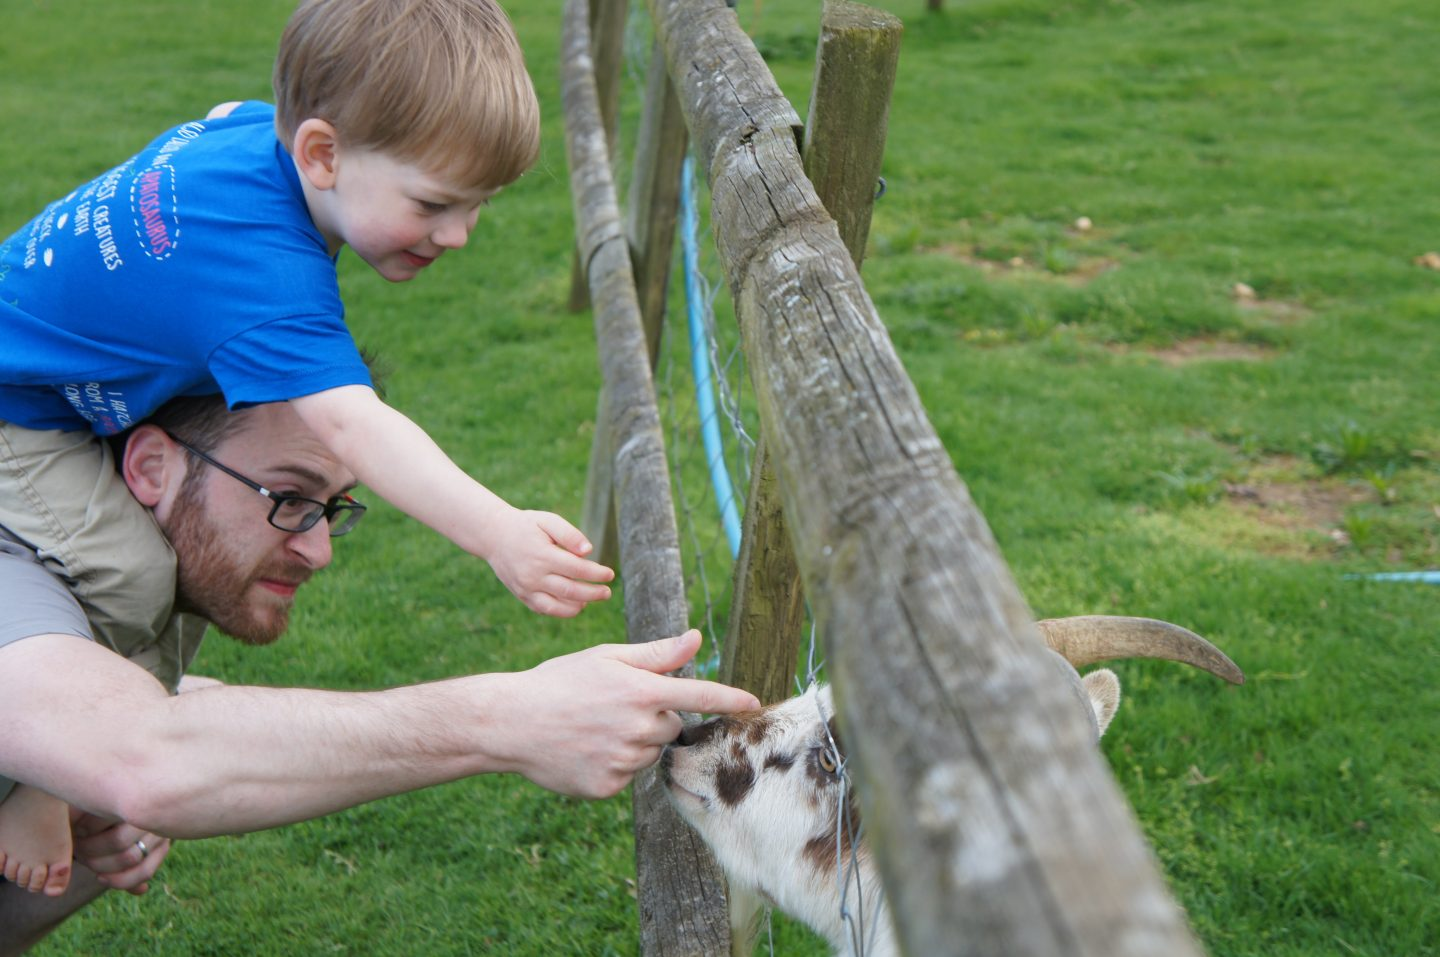 More feeding time